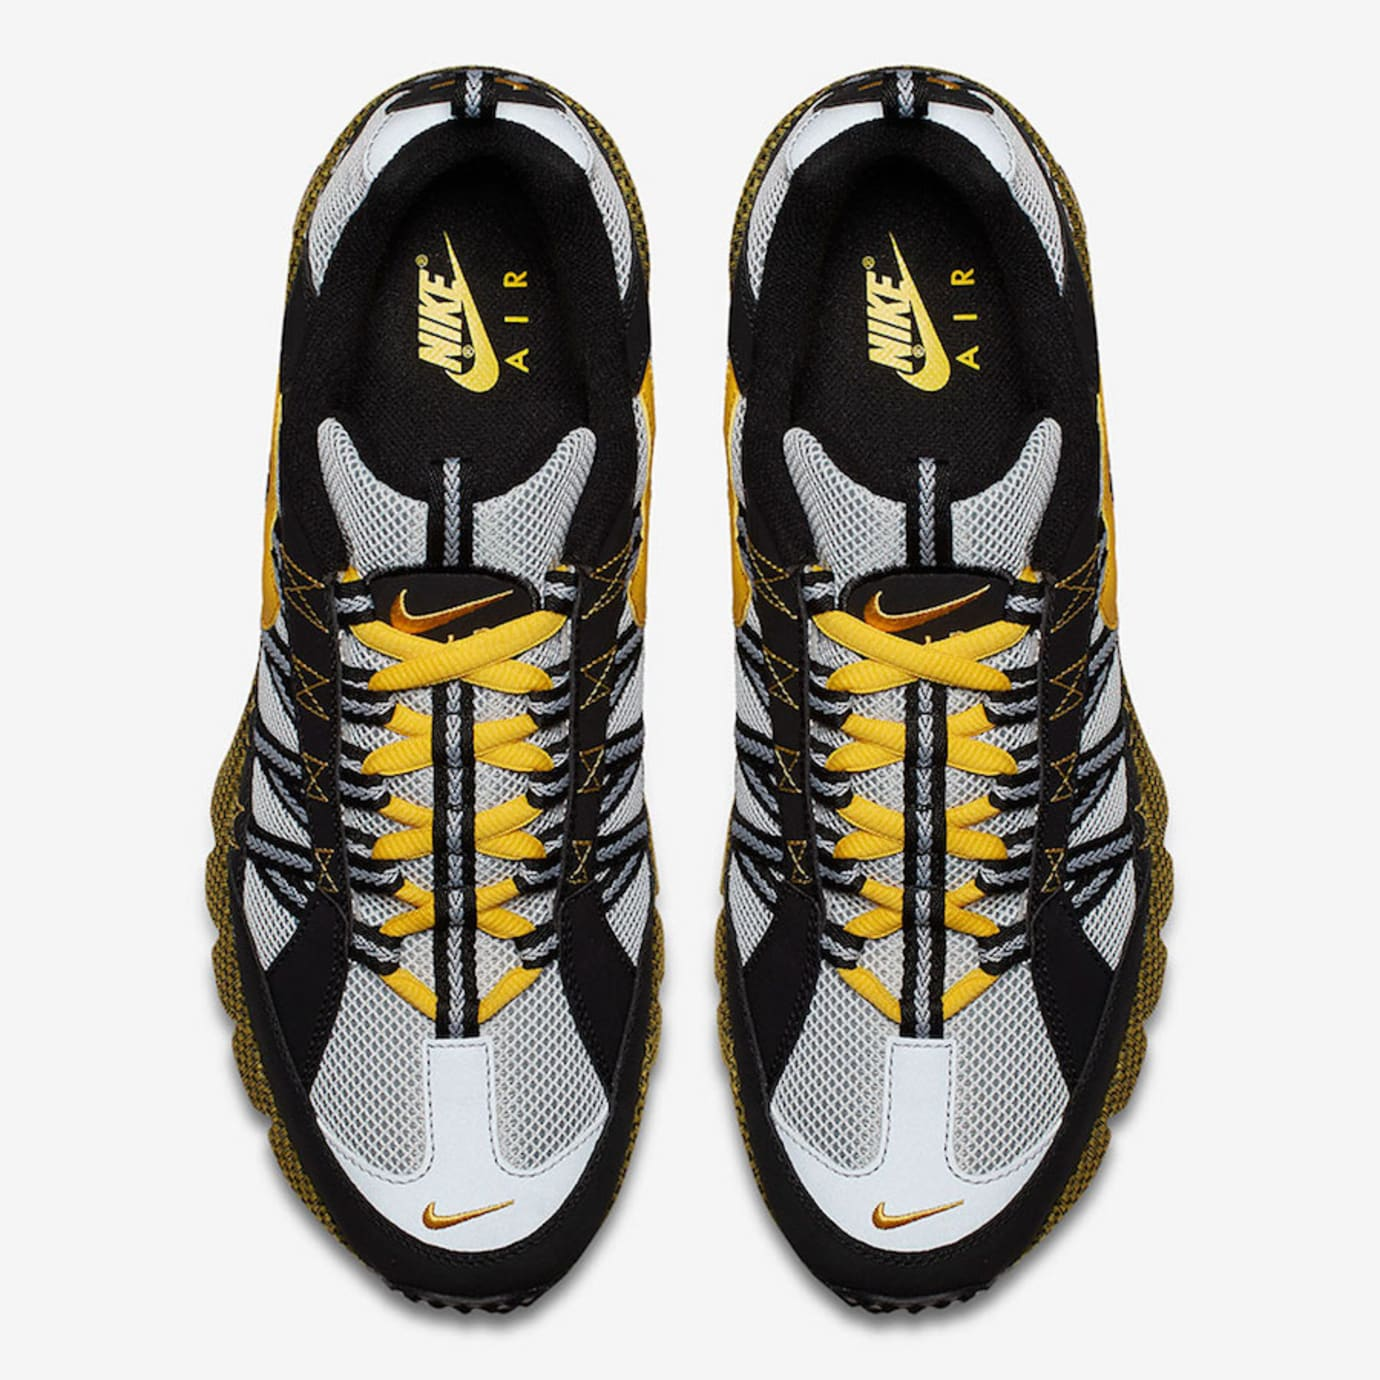 Nike Air Humara 'Varsity Maize' AJ1102-001 (Top)